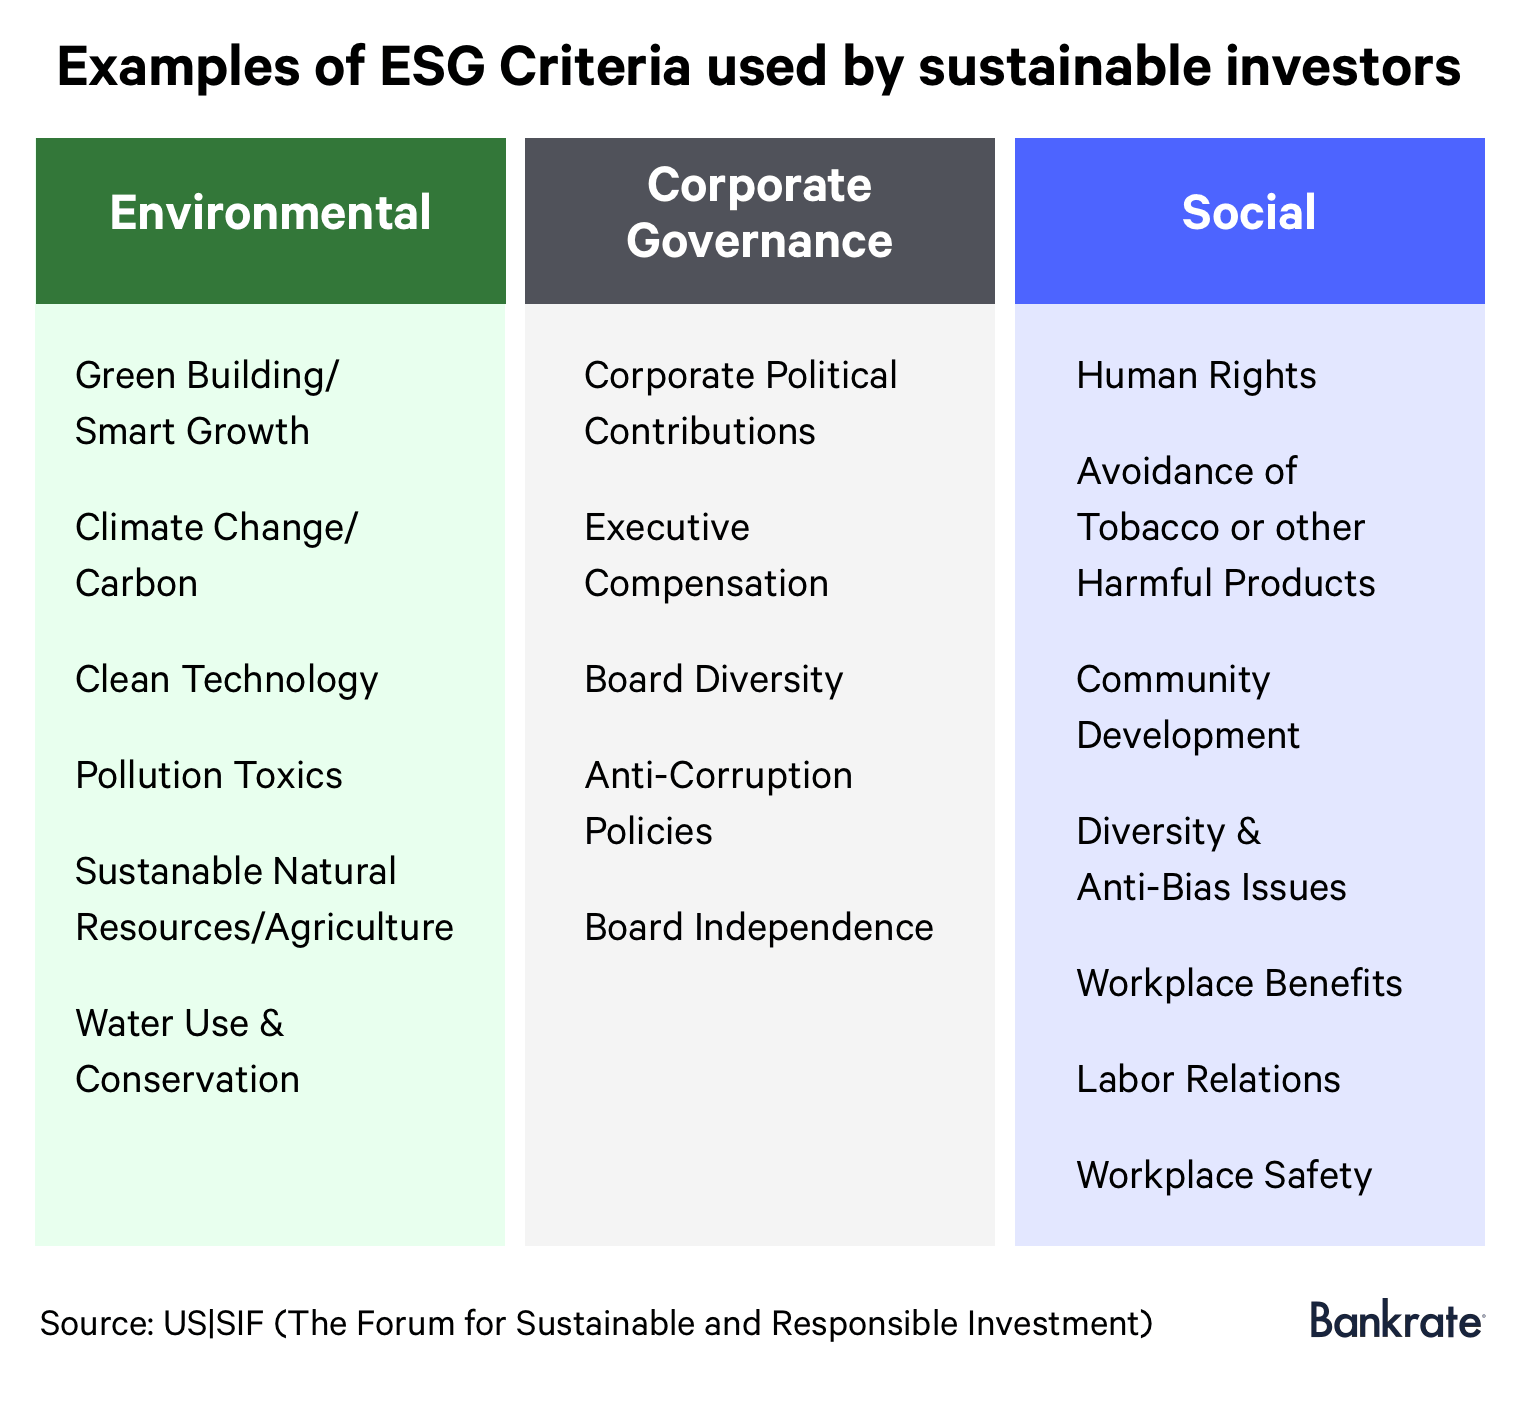 Environmental, corporate governance and social criterias